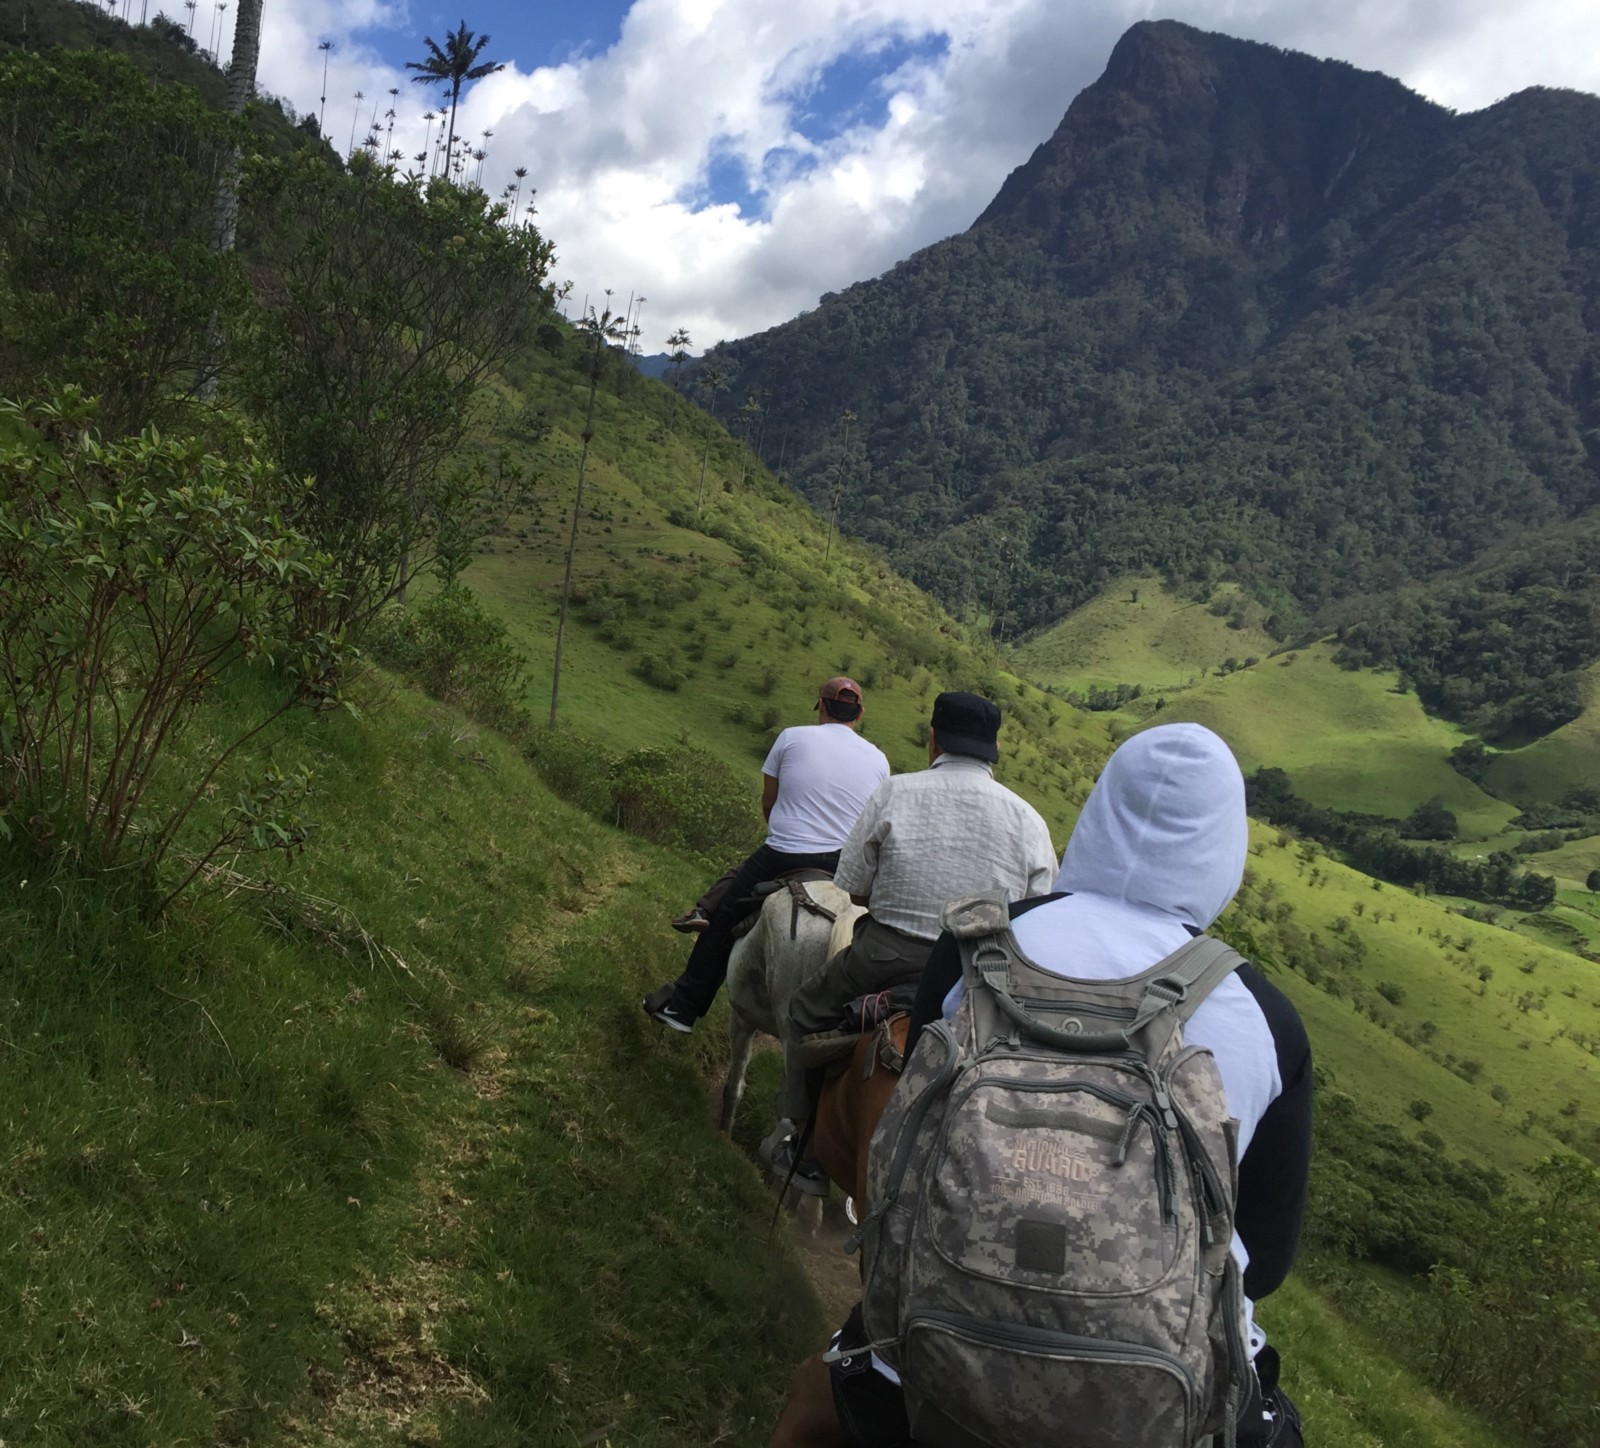 One hour horse ride between mountains for $15 USD— Valle del Cocora, Quindío — Colombia